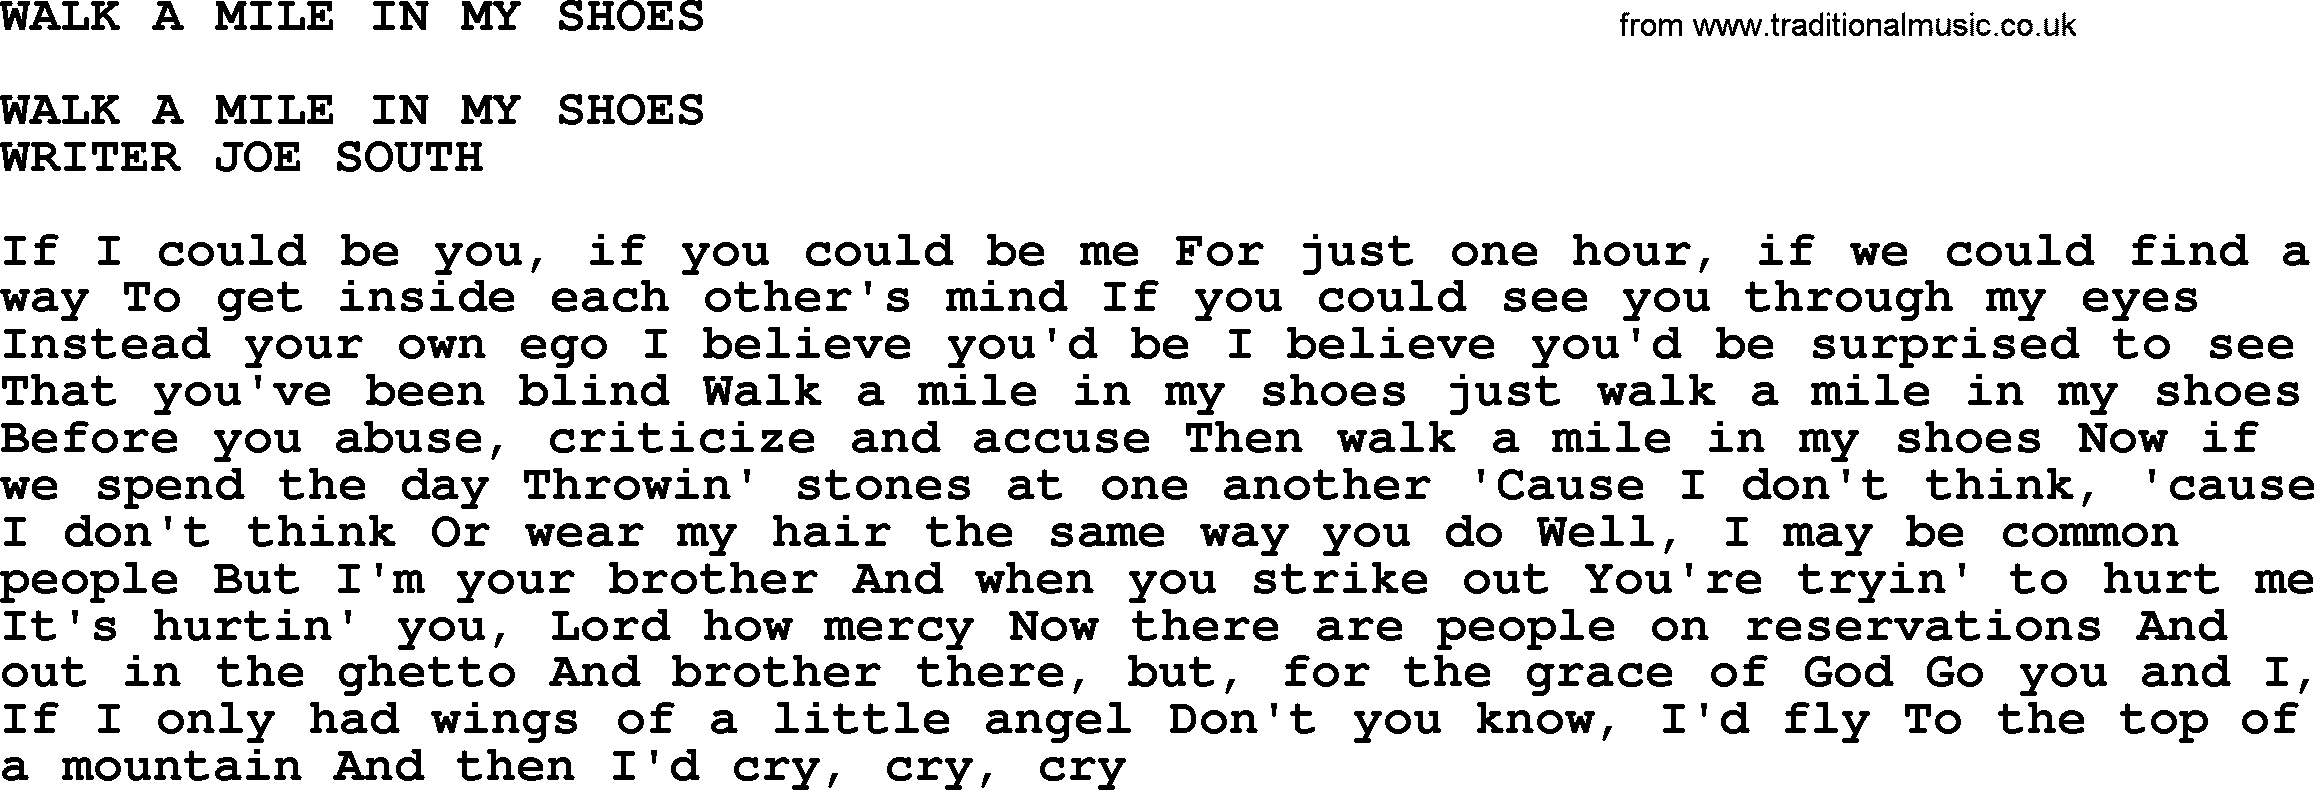 Walk A Mile In My Shoes Song